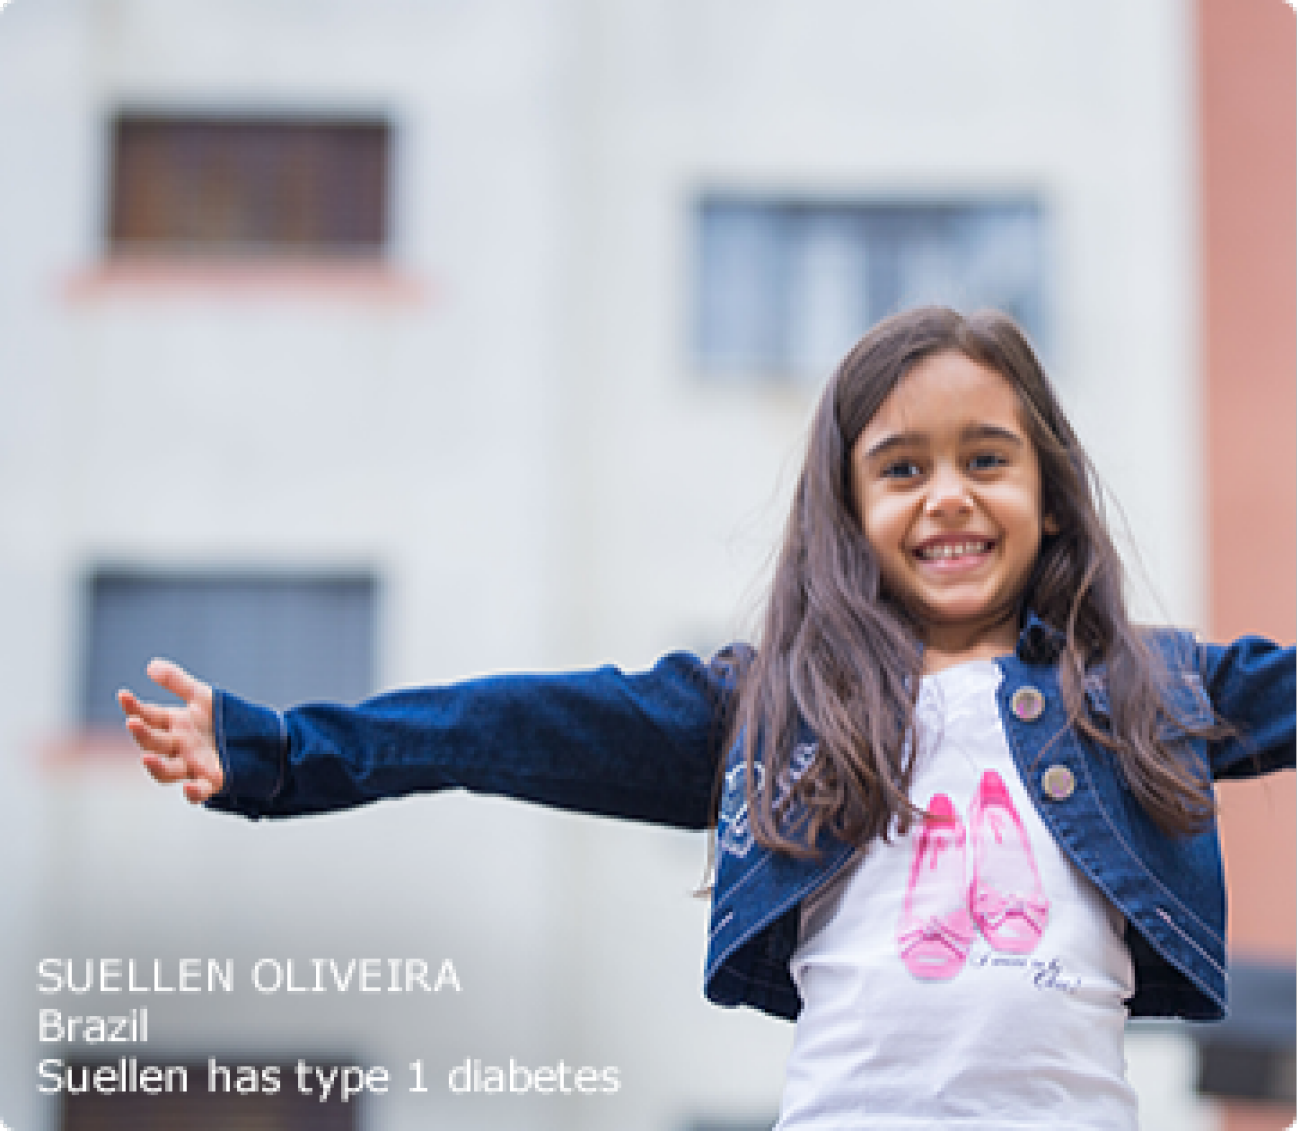 Young type 1 patient (Suellen) standing outside with arms raised